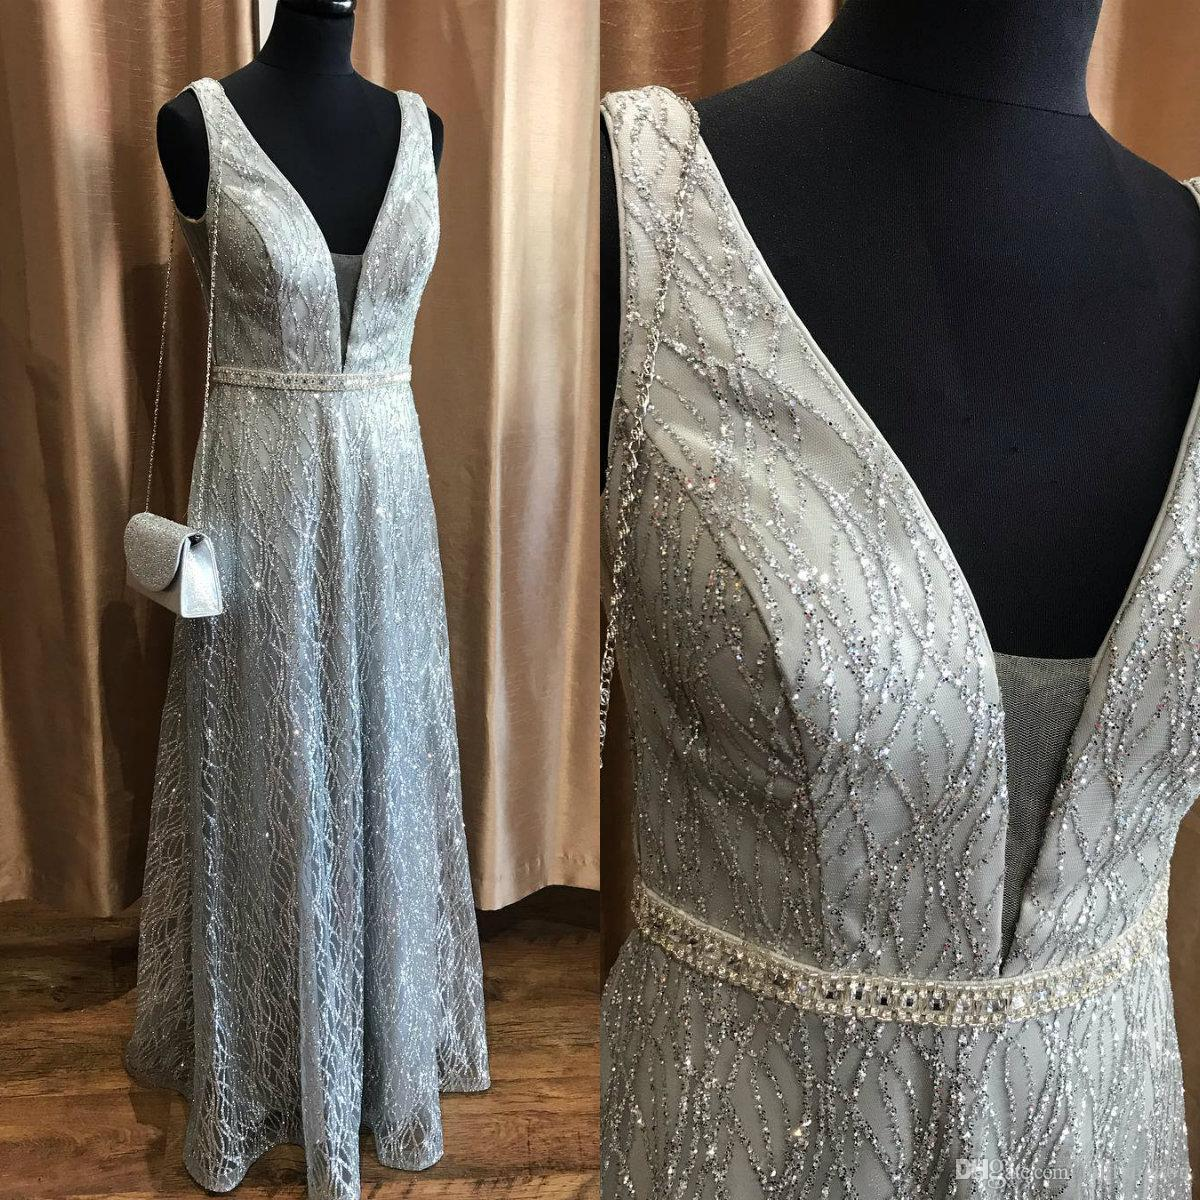 Gorgeous Sequined Mother Of The Bride Dresses Sleeveless V Neck Mothers Plus Size Evening Dress vestidos Formal Prom Dresses